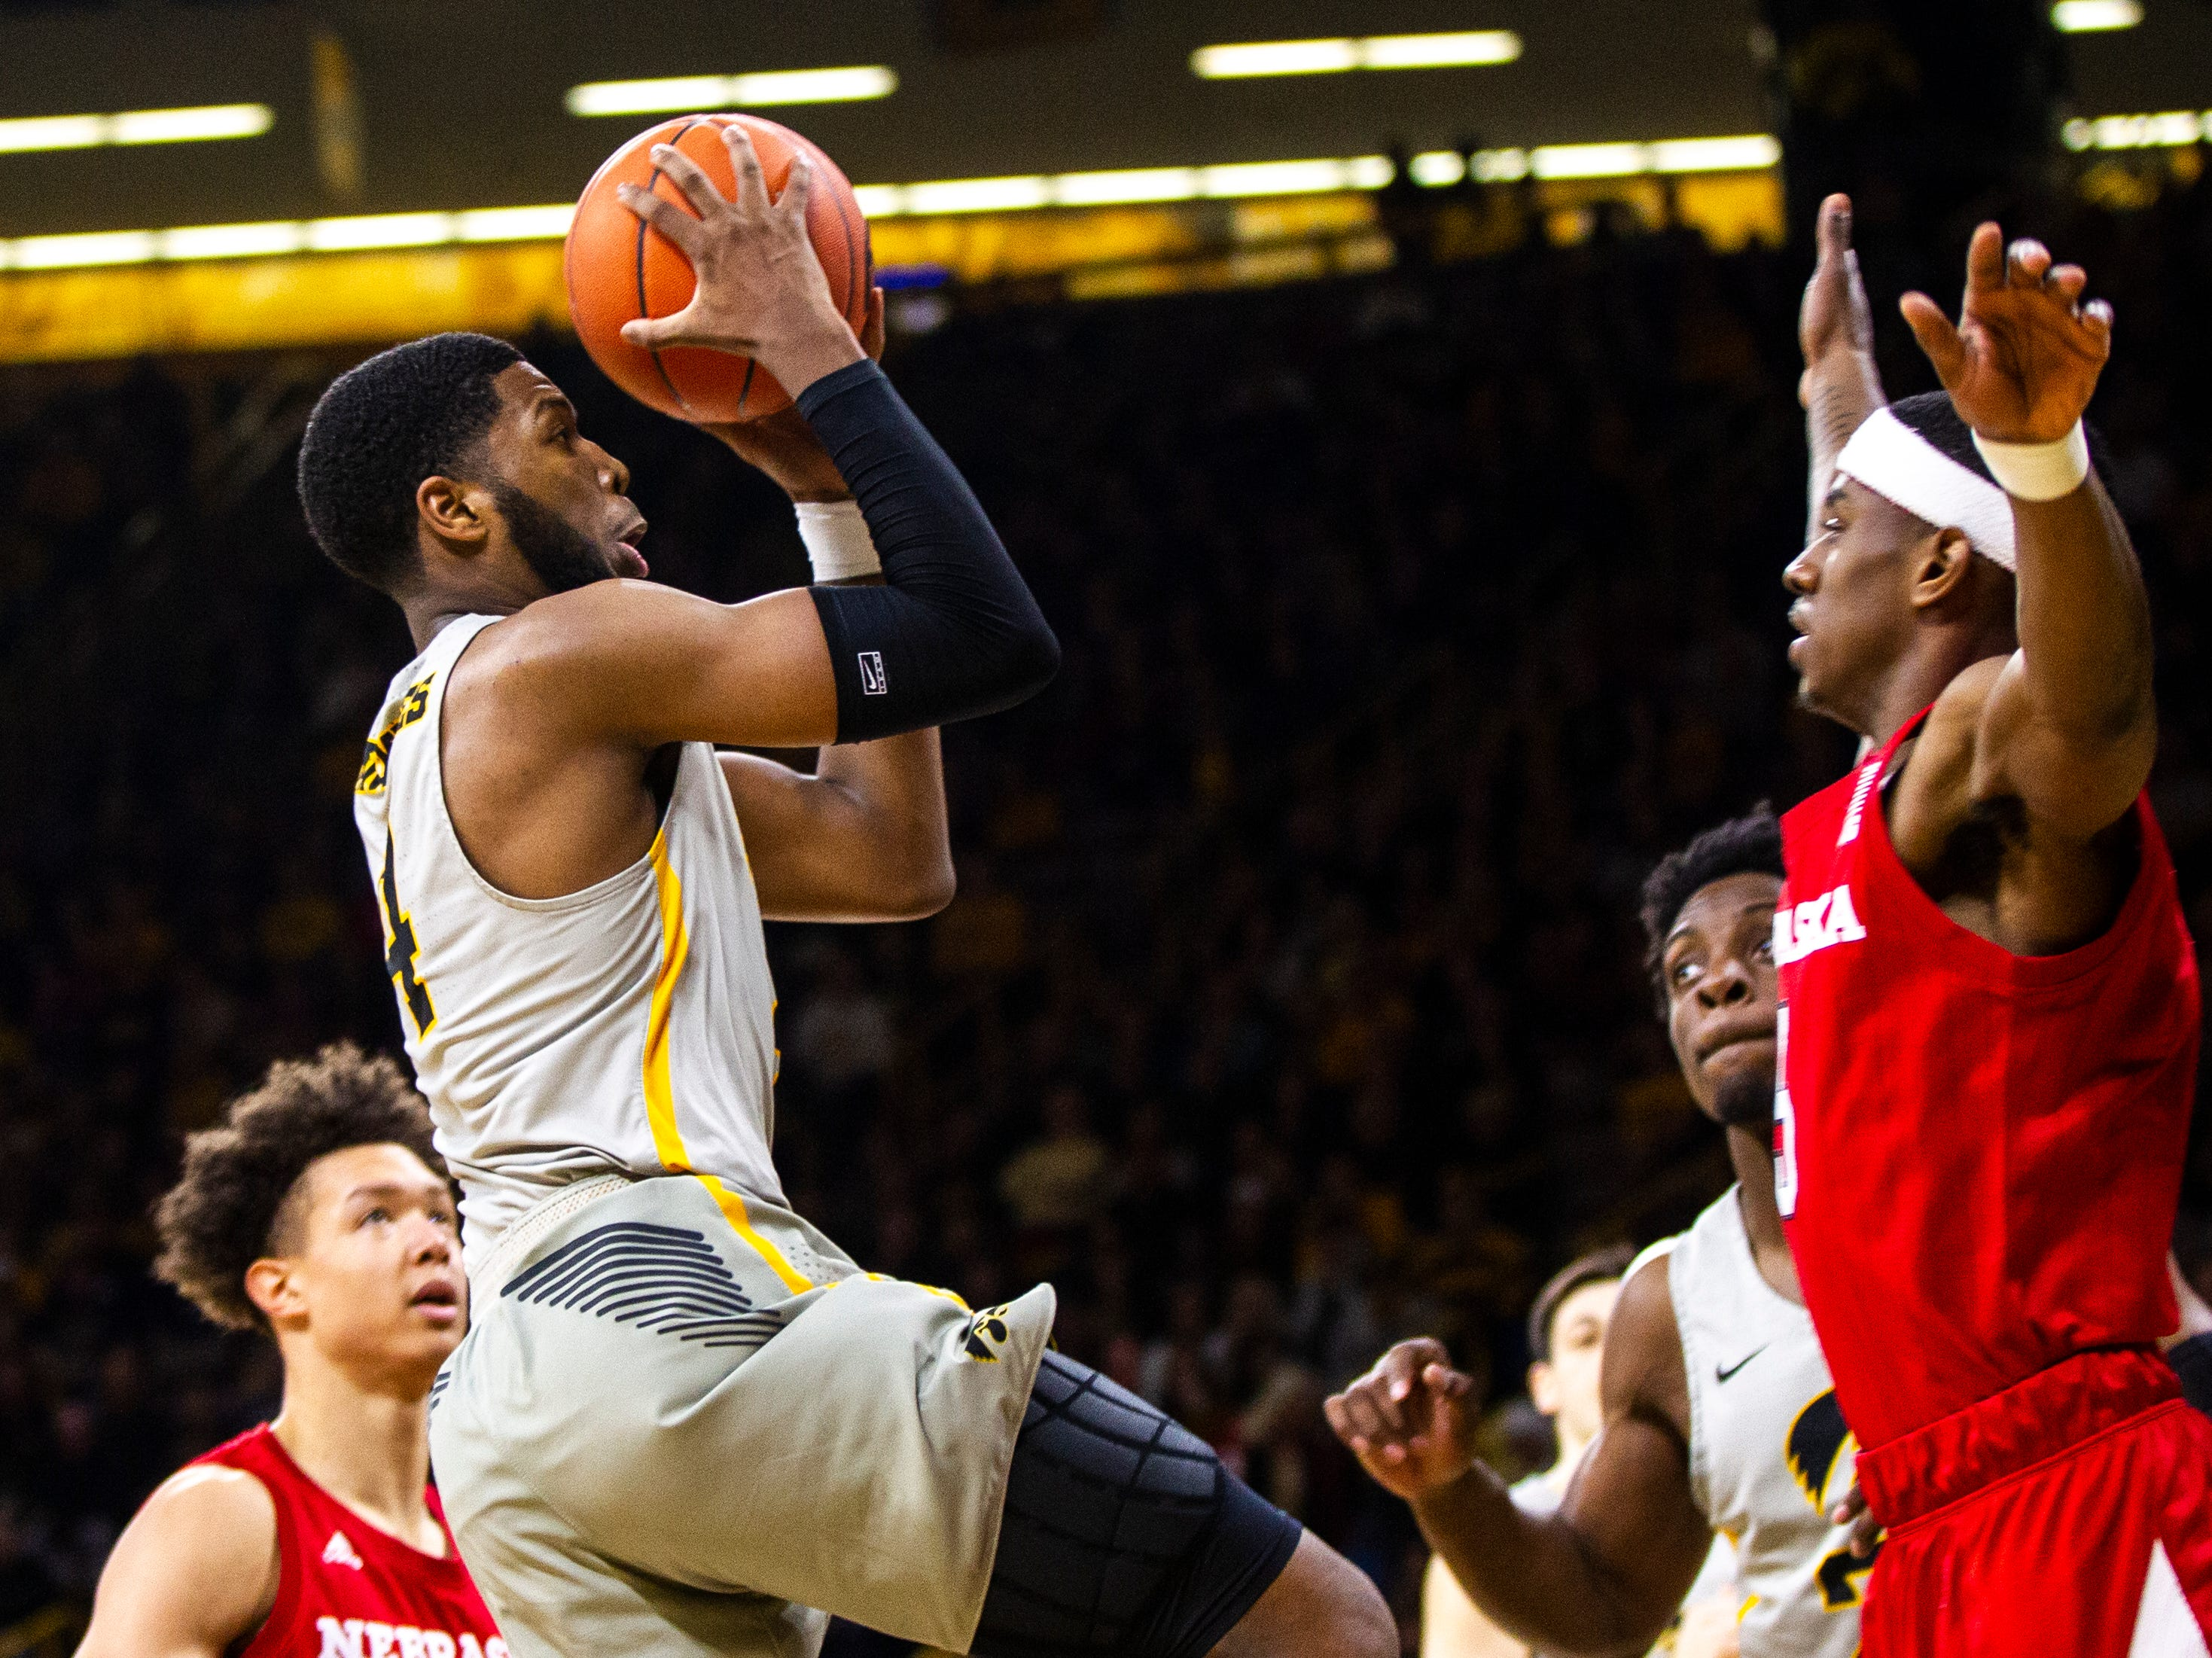 Iowa guard Isaiah Moss (4) makes a basket past Nebraska guard Glynn Watson Jr. (5) during a NCAA Big Ten Conference men's basketball game on Sunday, Jan. 6, 2019, at the Carver-Hawkeye Arena in Iowa City, Iowa.